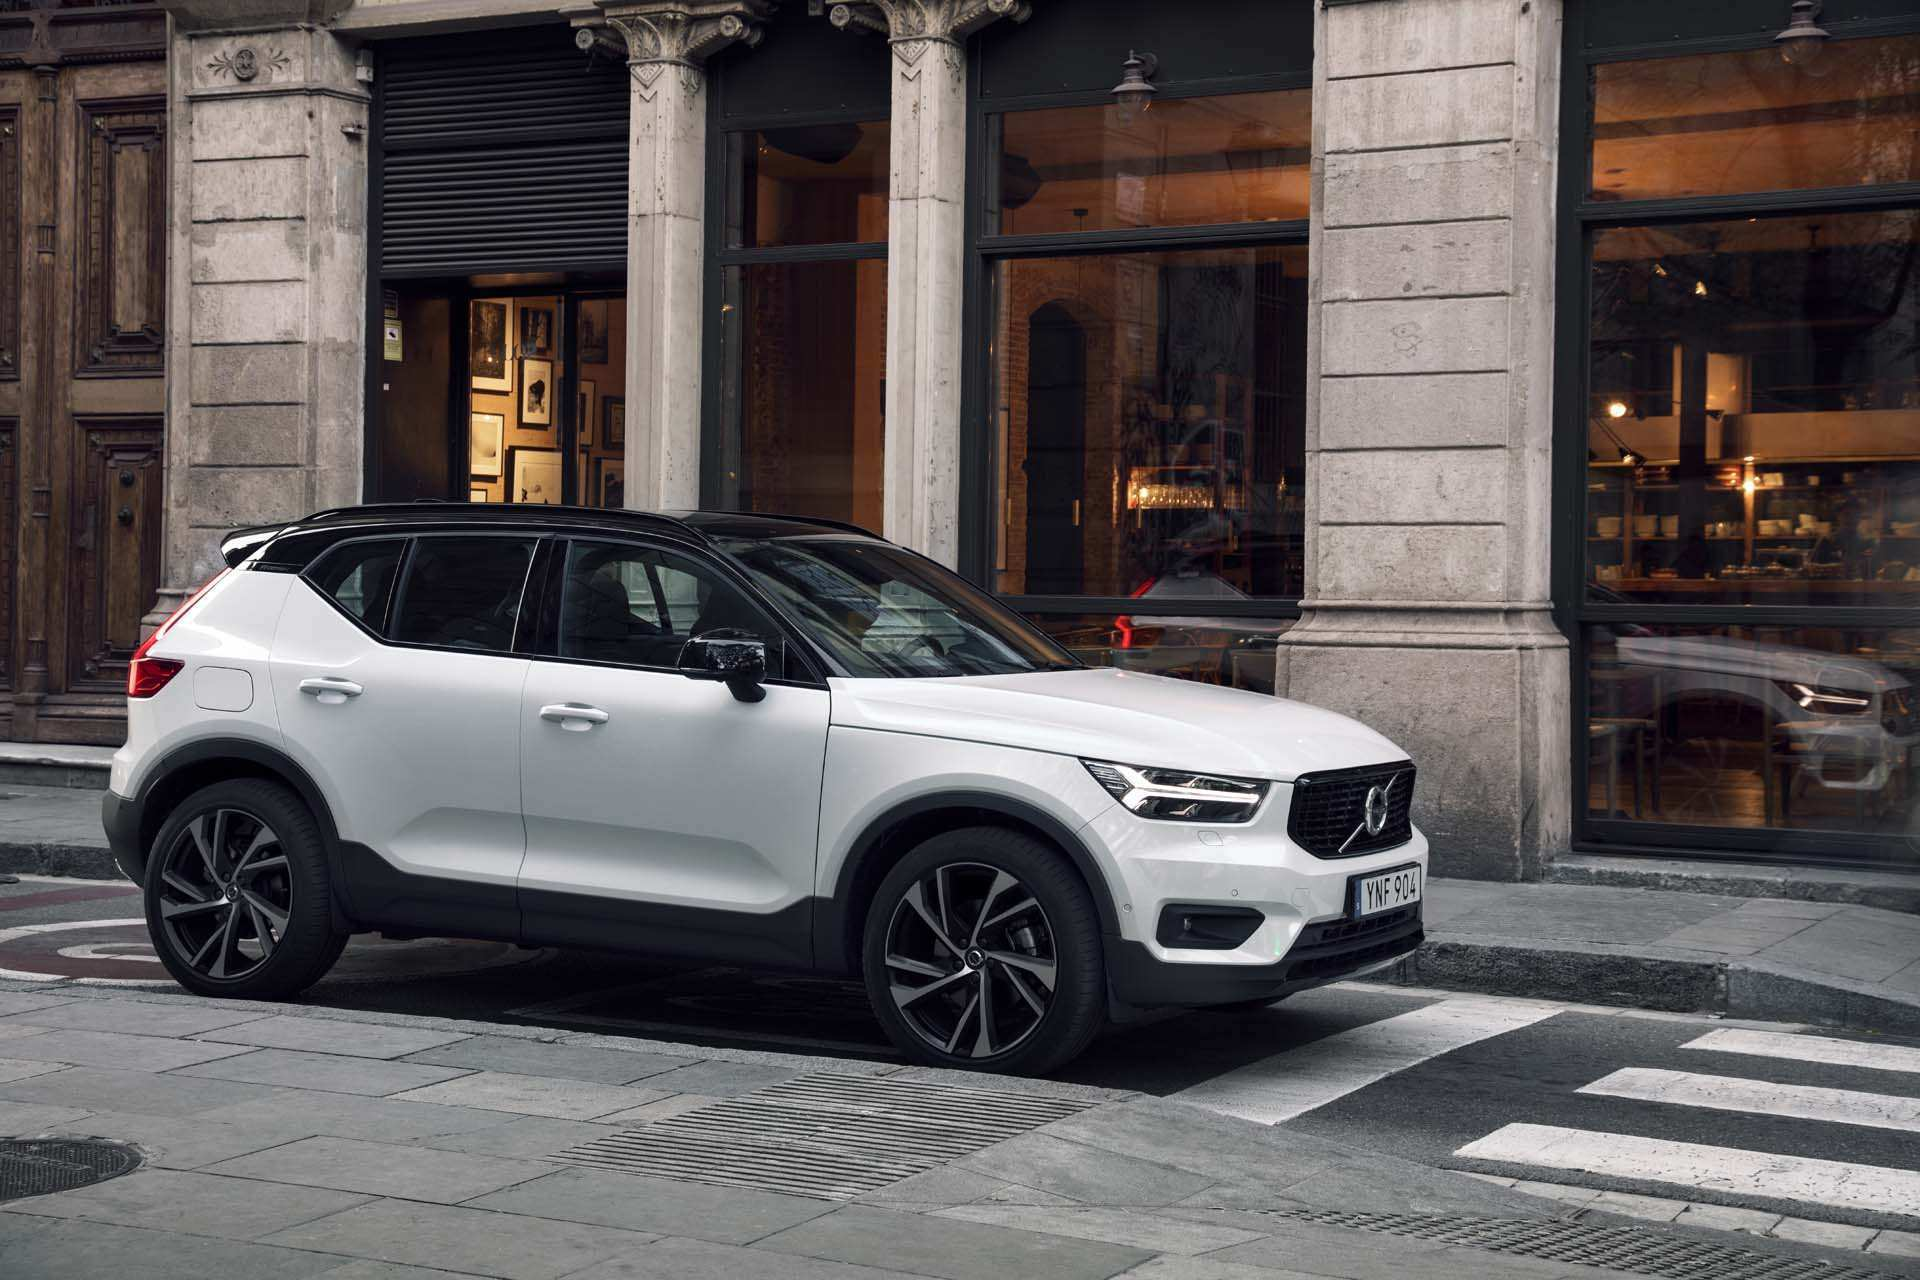 73 Best Review Best Hybrid Volvo 2019 First Drive Wallpaper with Best Hybrid Volvo 2019 First Drive